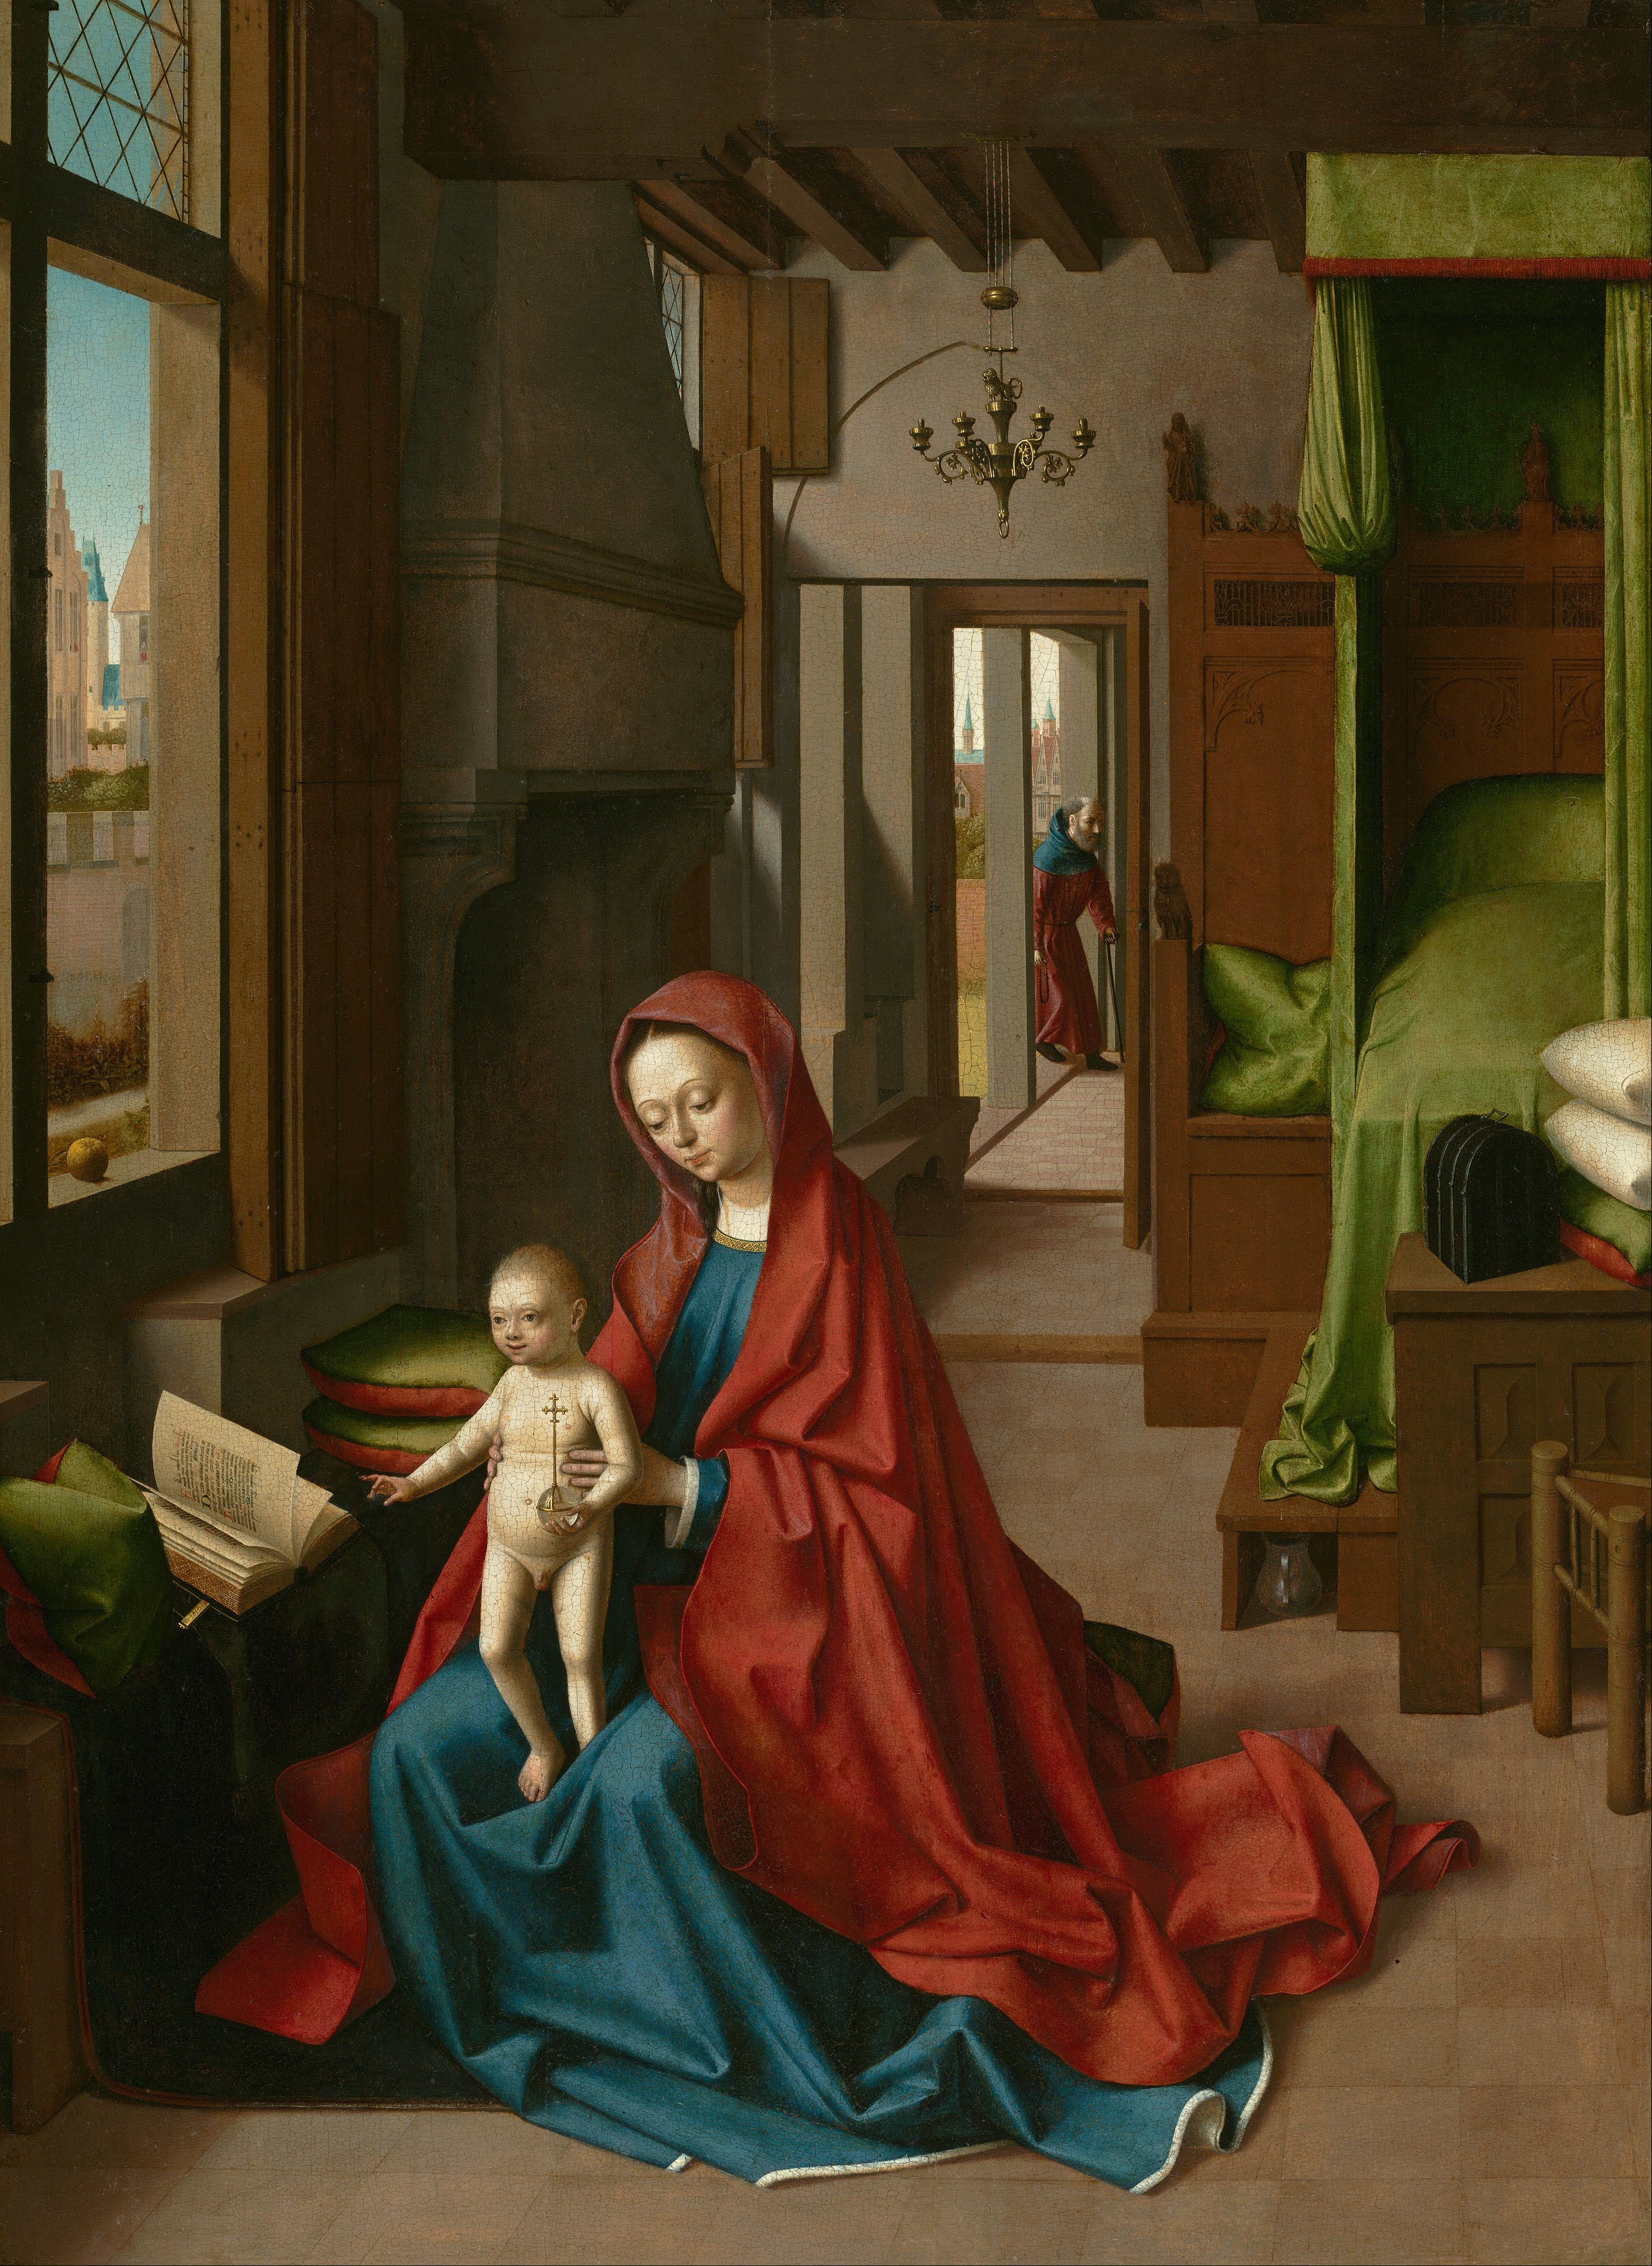 Petrus-Christus-attr-1460-1467-Virgin-And-Child-In-A-Domestic-Interior-Atkins-Museum-Kansas-City-scaled